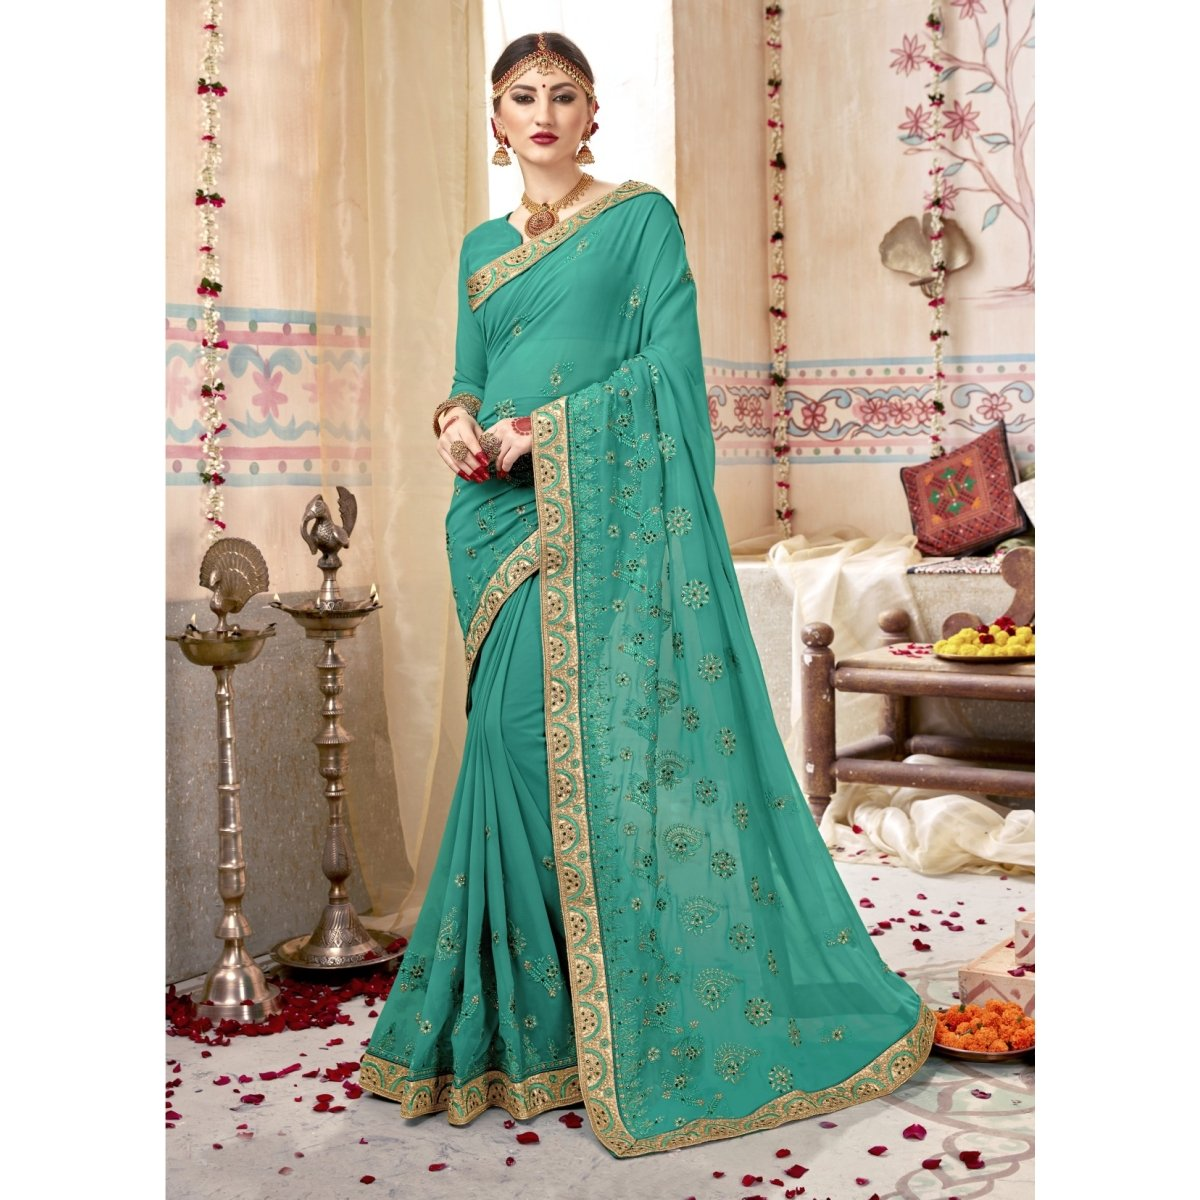 a3f4d211b7 Buy Sea Green Color Georgette Saree. TRIVENI SAREES